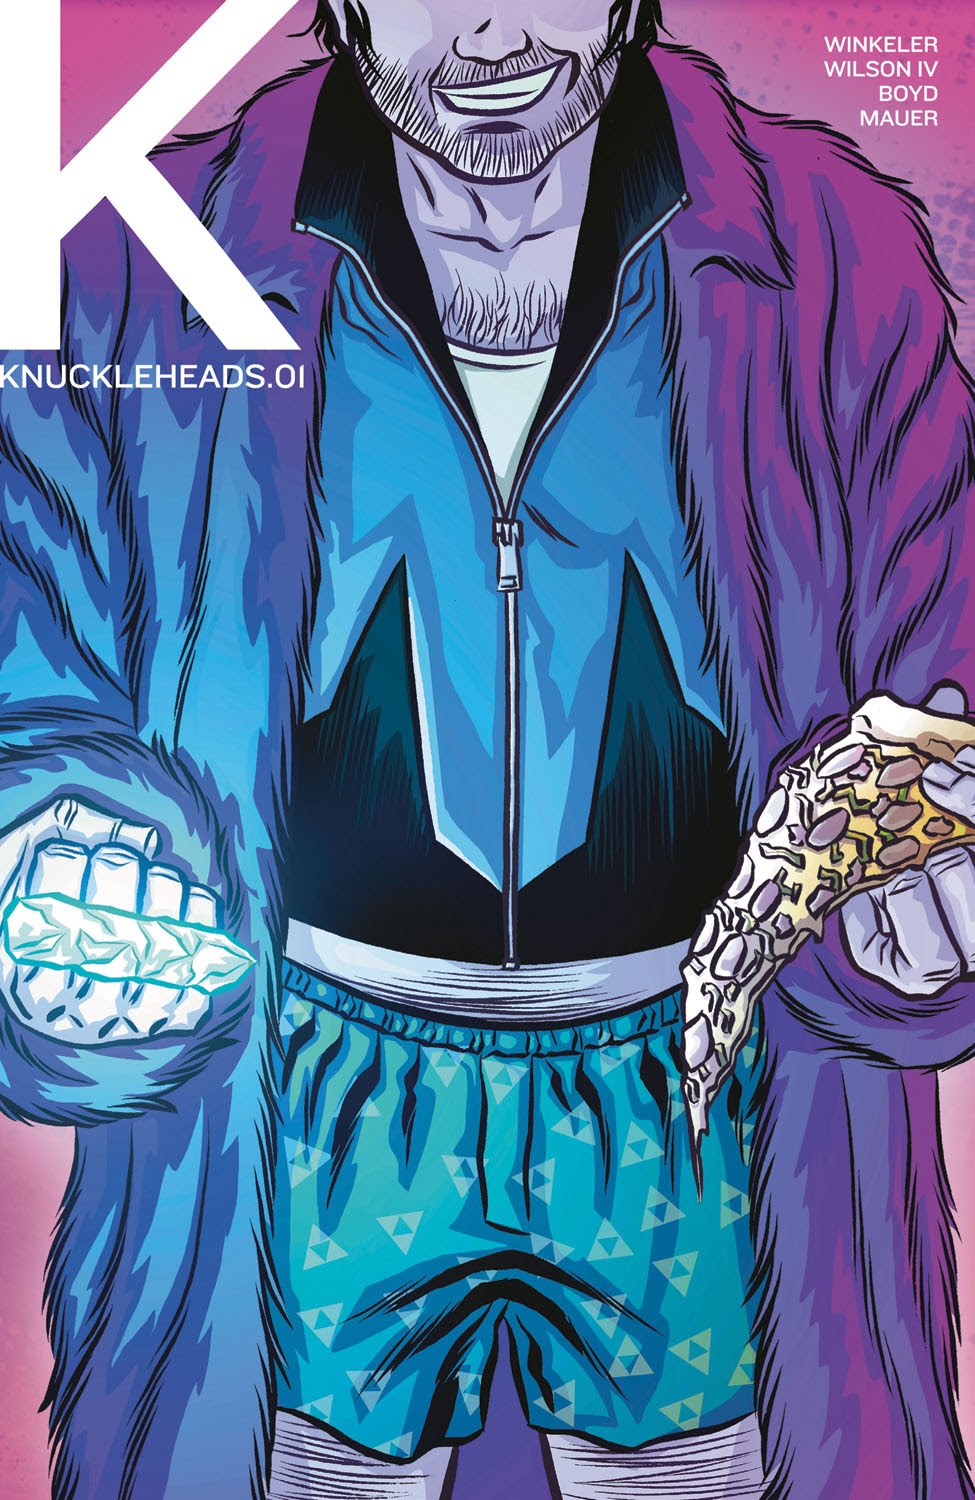 IDW Rolls Out Print Edition of Digital Favorite Knuckleheads